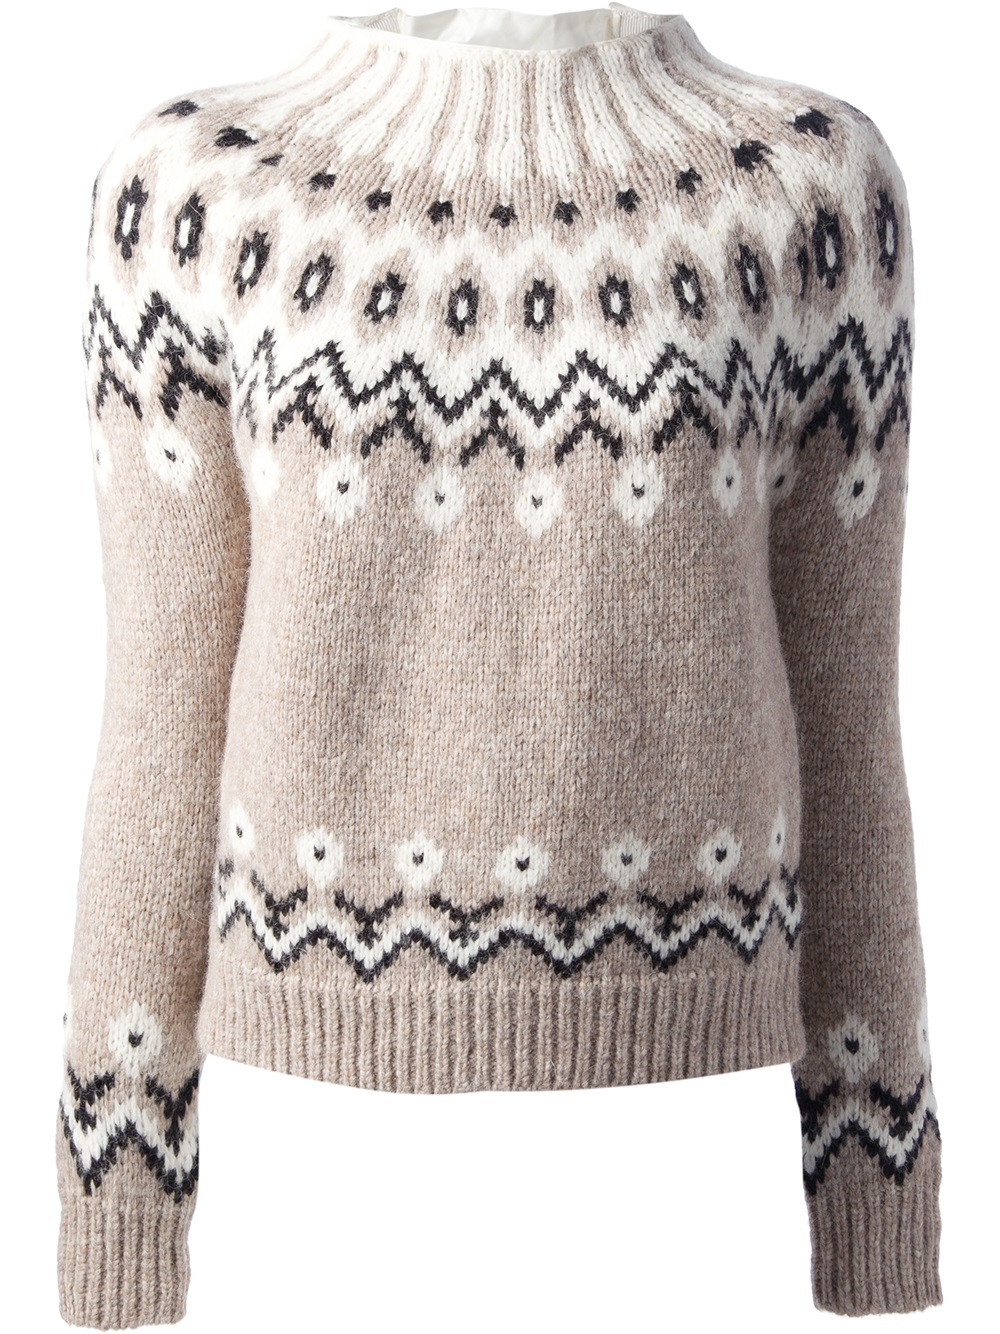 Moncler Fair Isle Knit Sweater in Natural | Lyst